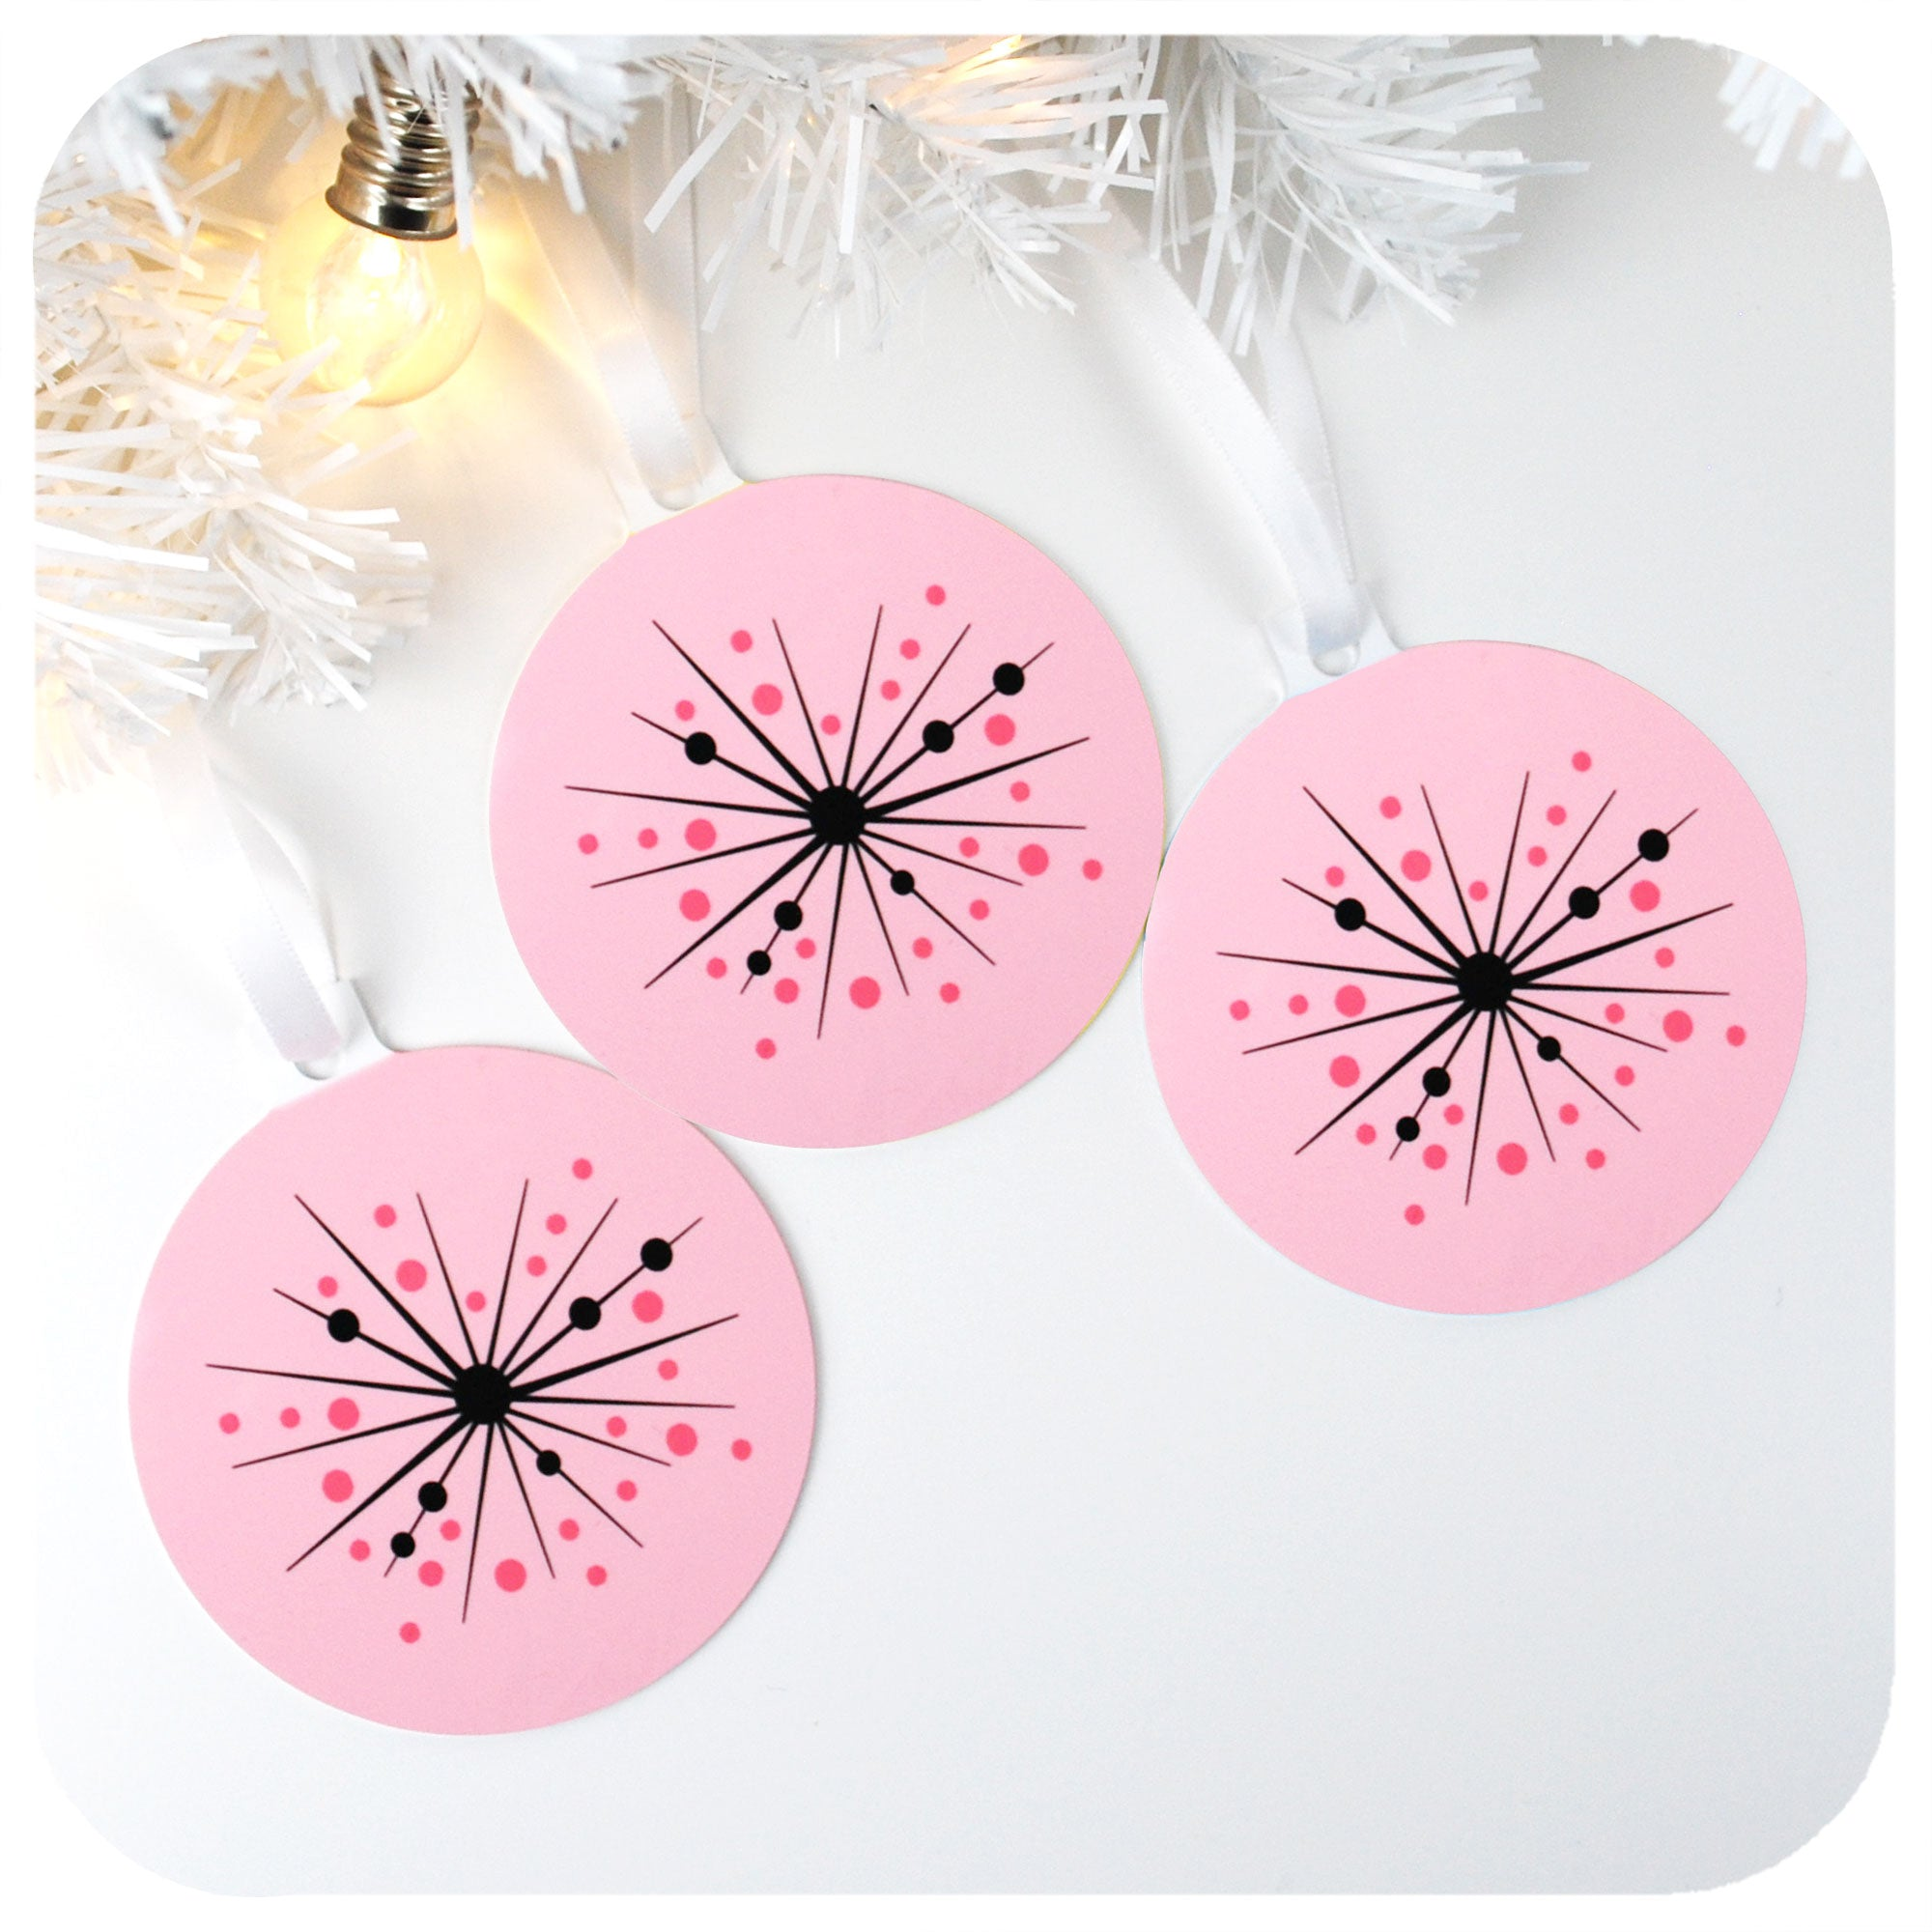 Set of 3 Pink Atomic Starburst Christmas Decorations | The Inkabilly Emporium